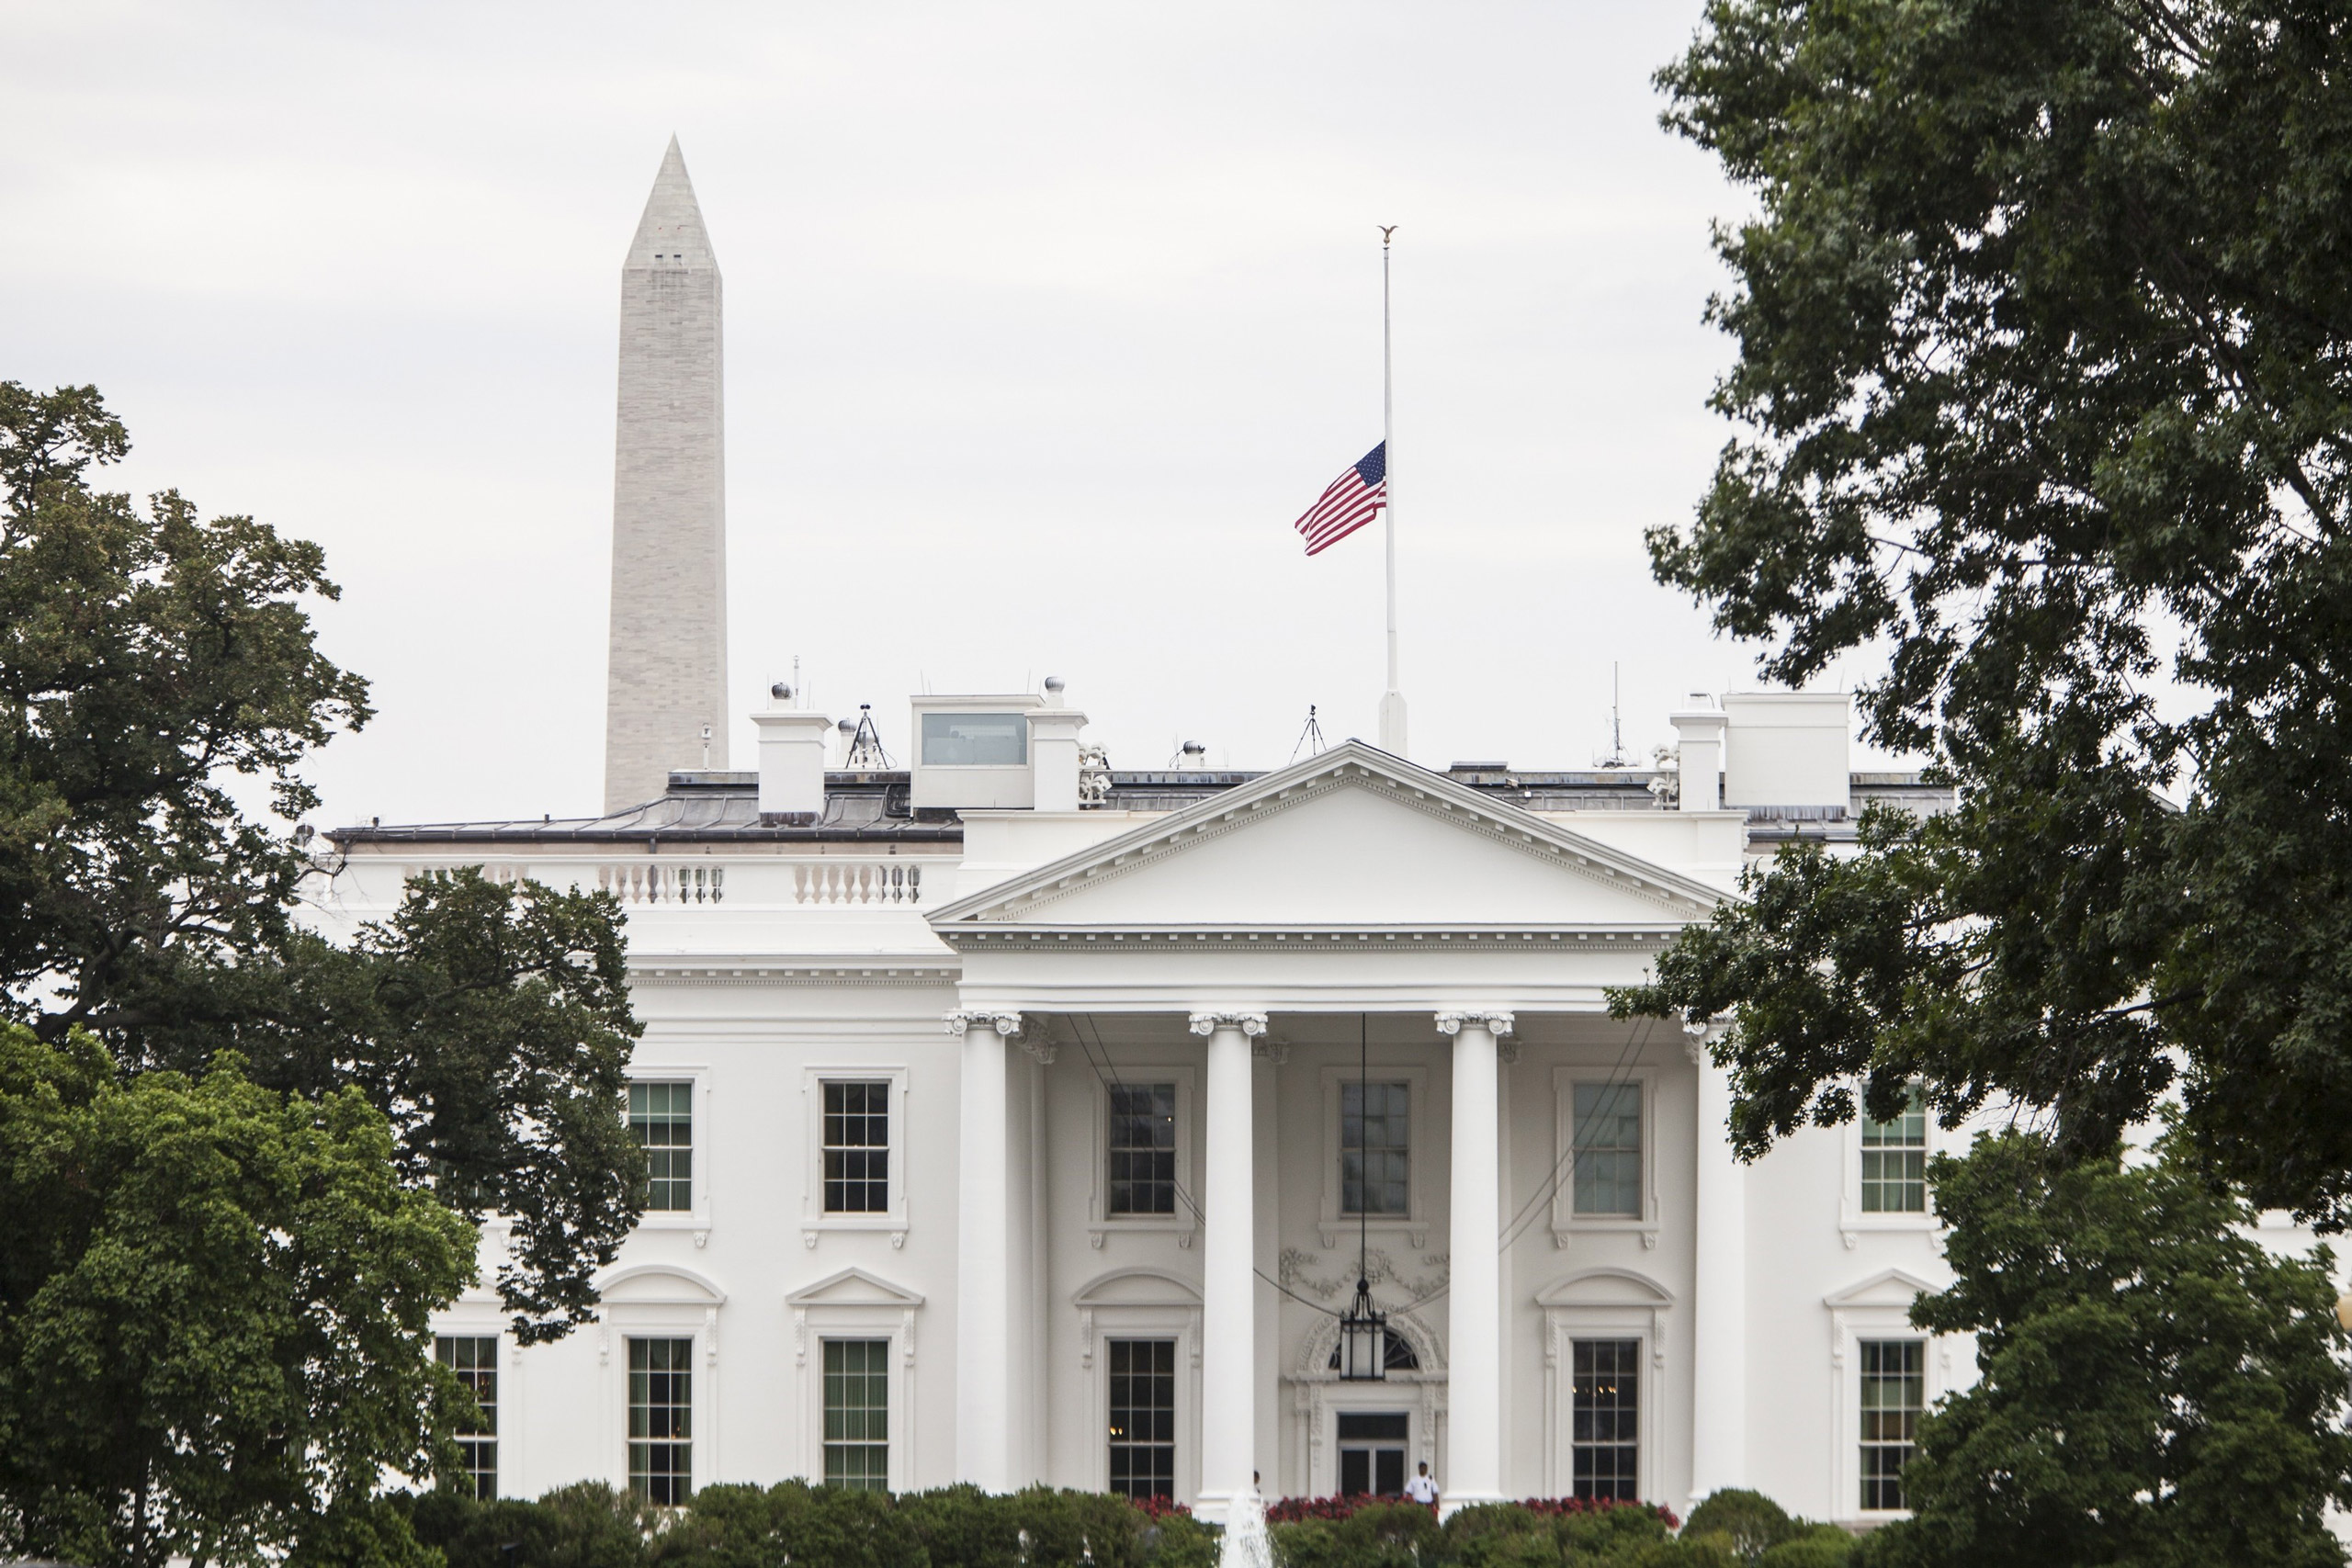 The American Flag flies above the White House after President Barack Obama ordered it lowered to half staff in honor of the four Marines and one Sailor killed in Chattanooga, TN in Washington,  on July 21, 2015.